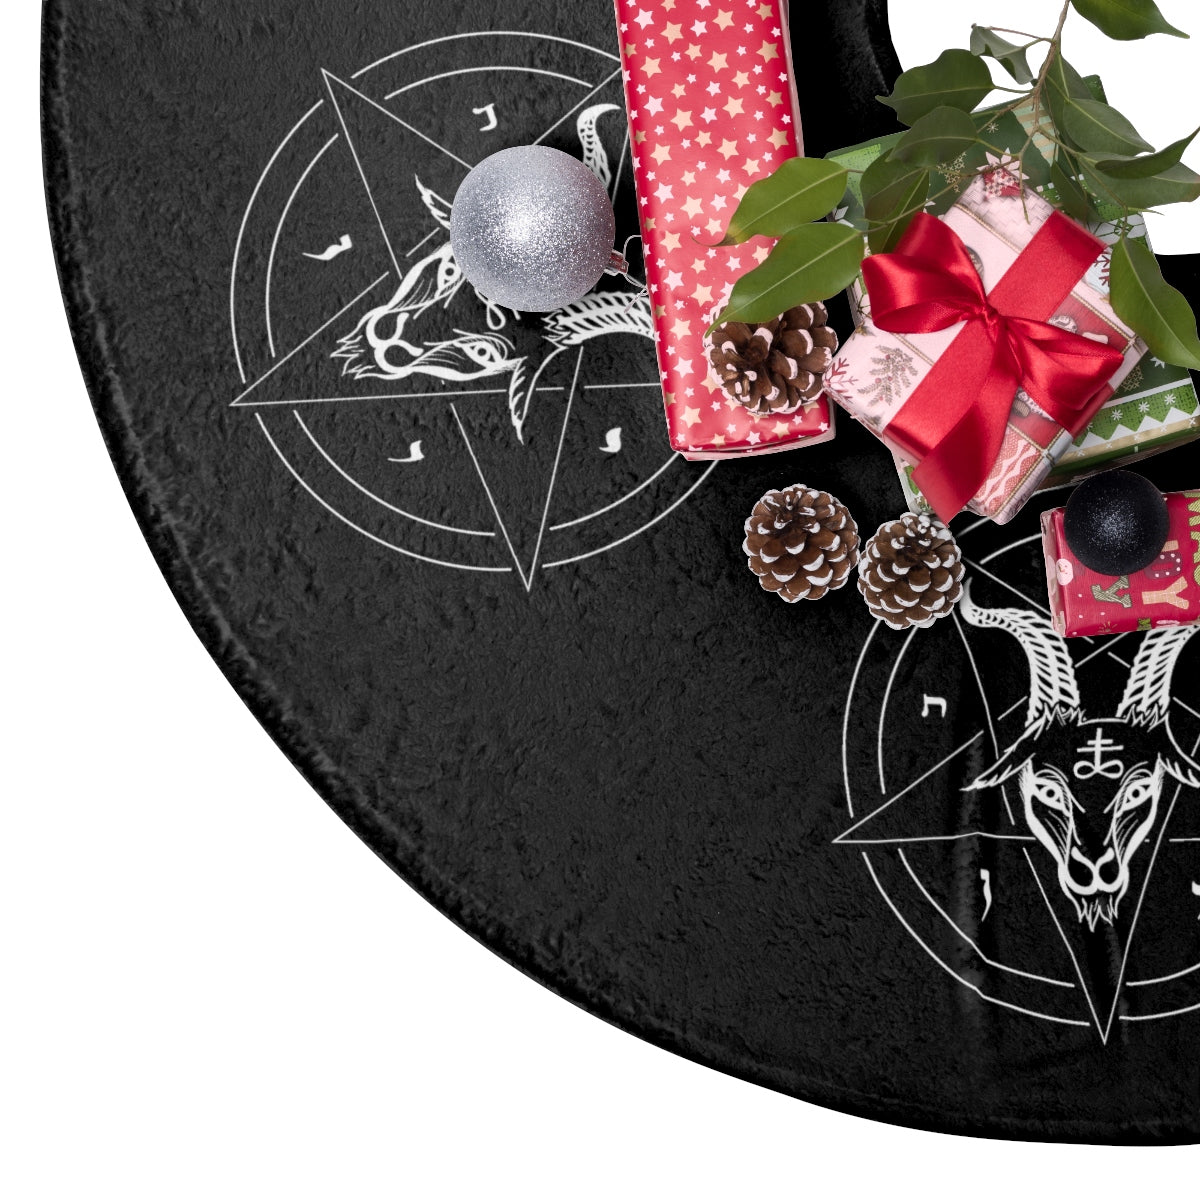 Fuzzy Satanic Baphomet Christmas Tree Skirt